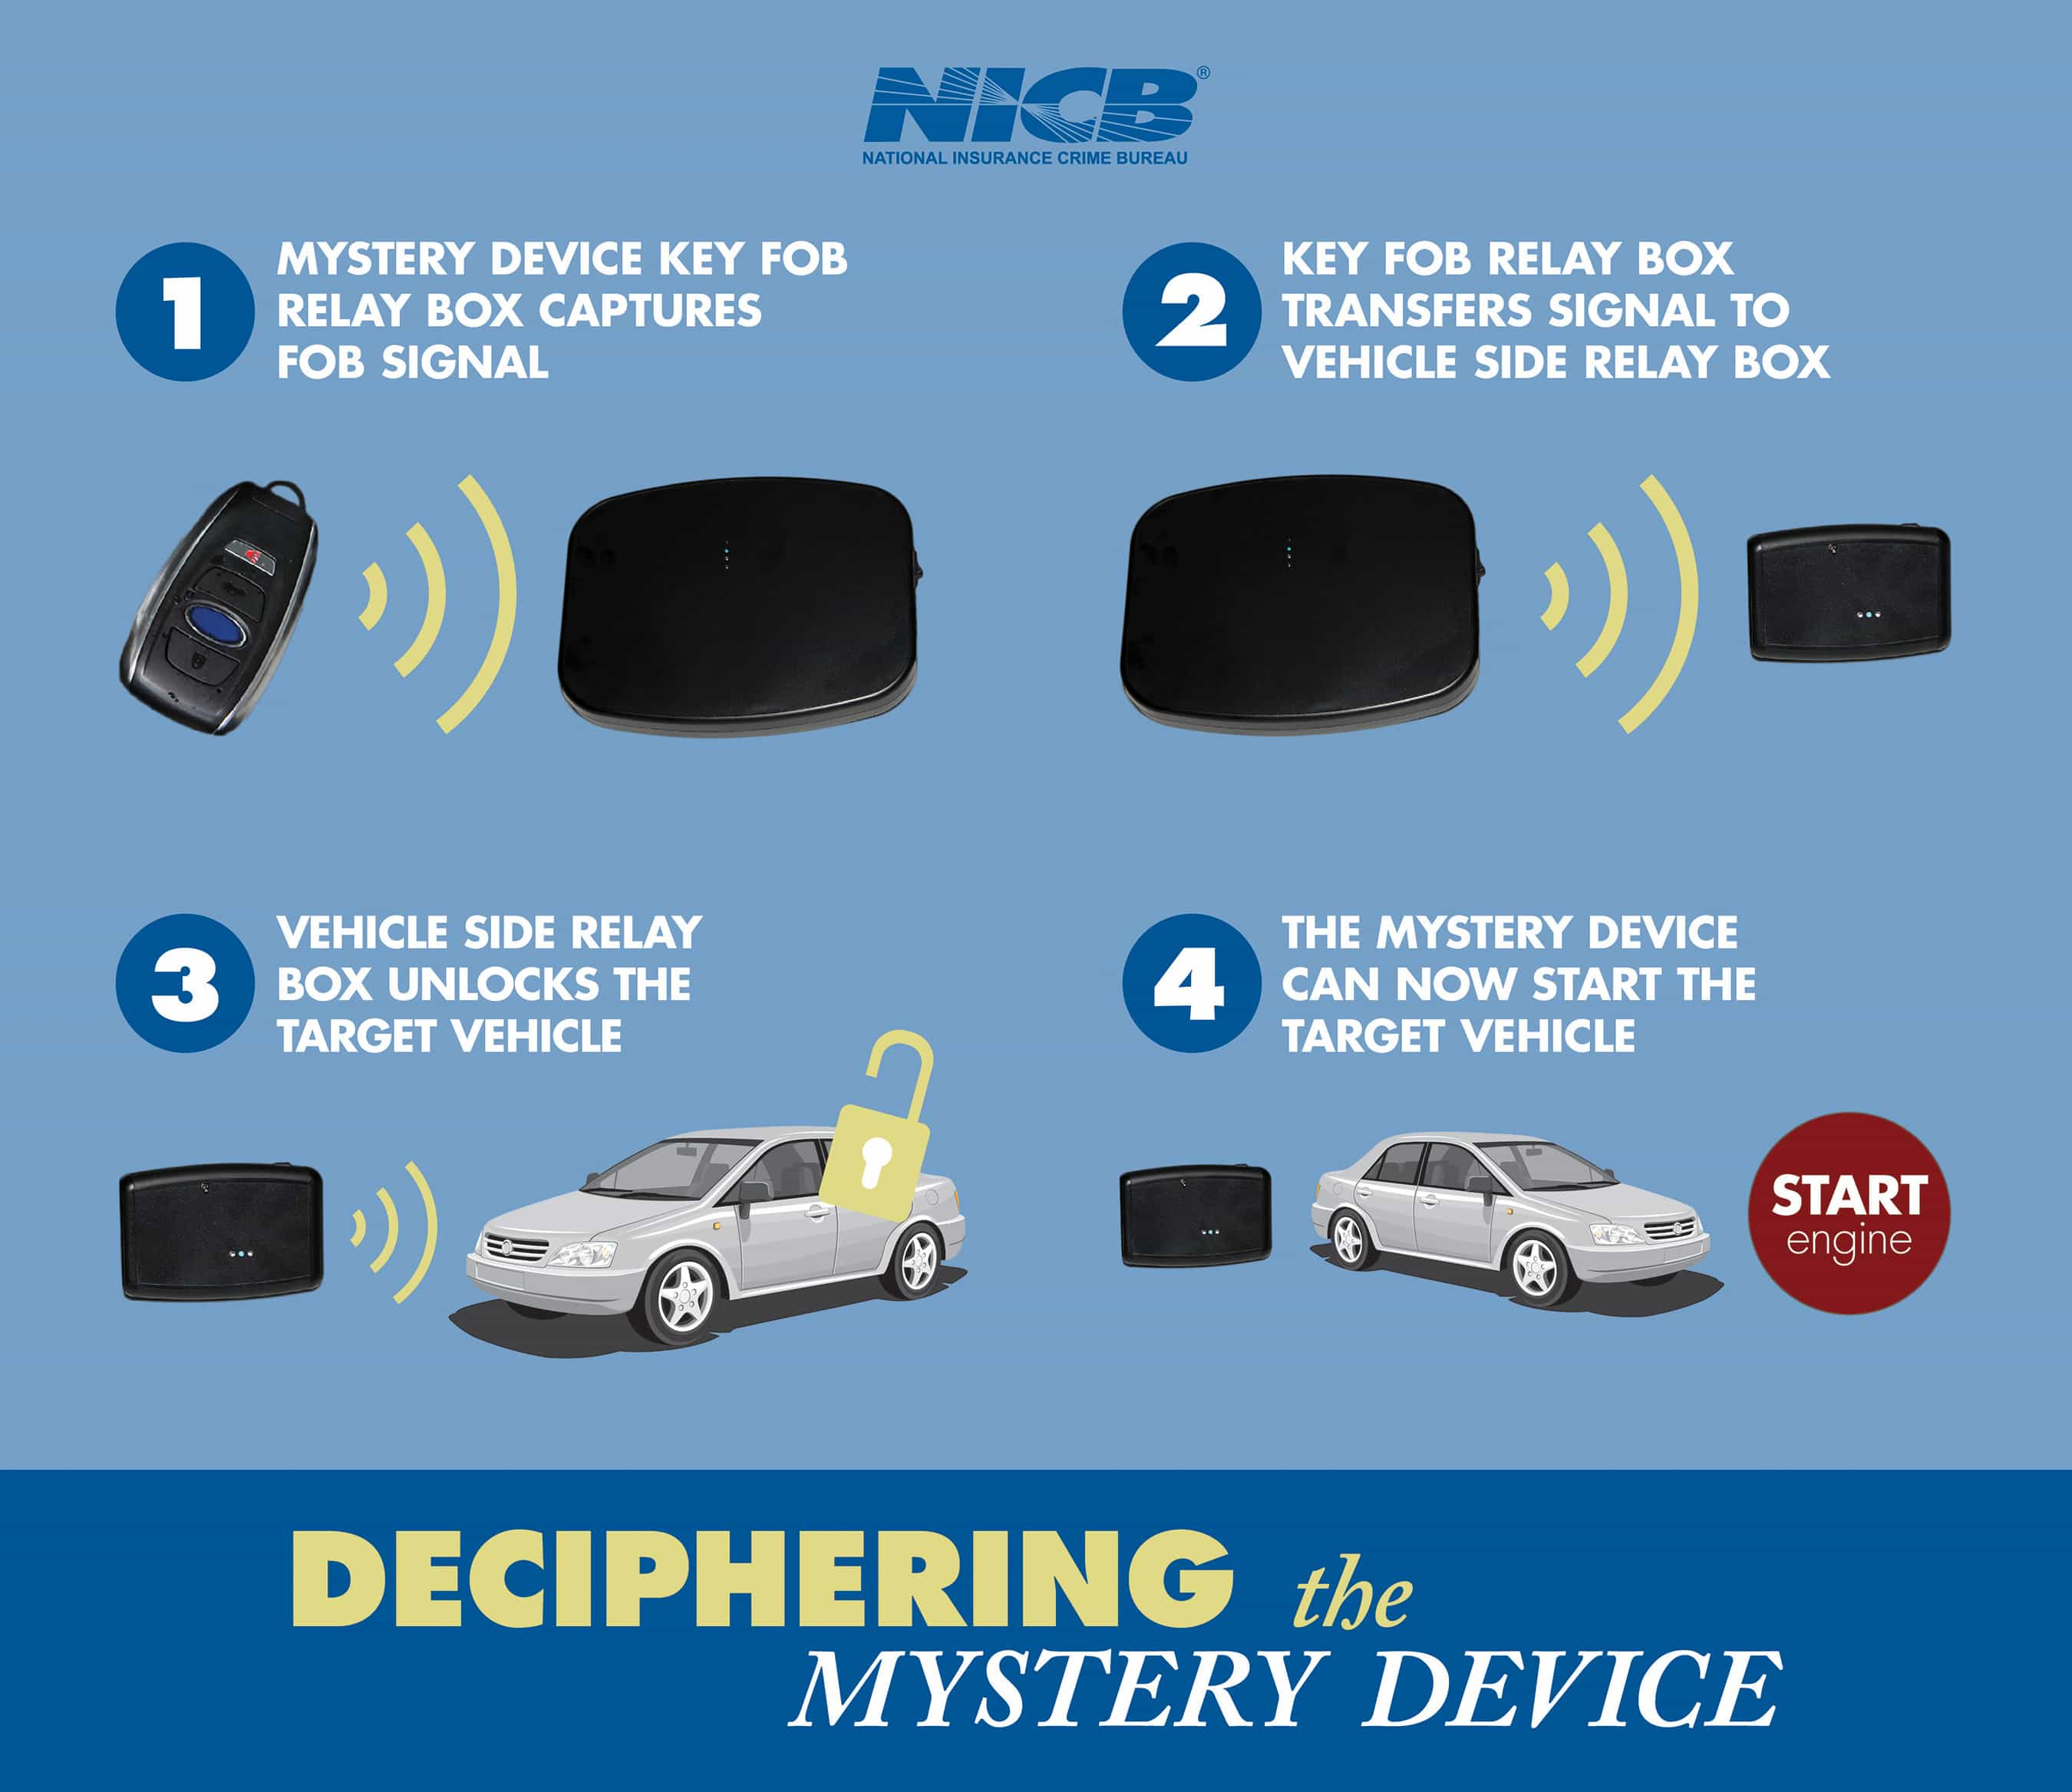 Connected car key fob stealing device found can unlock/steal